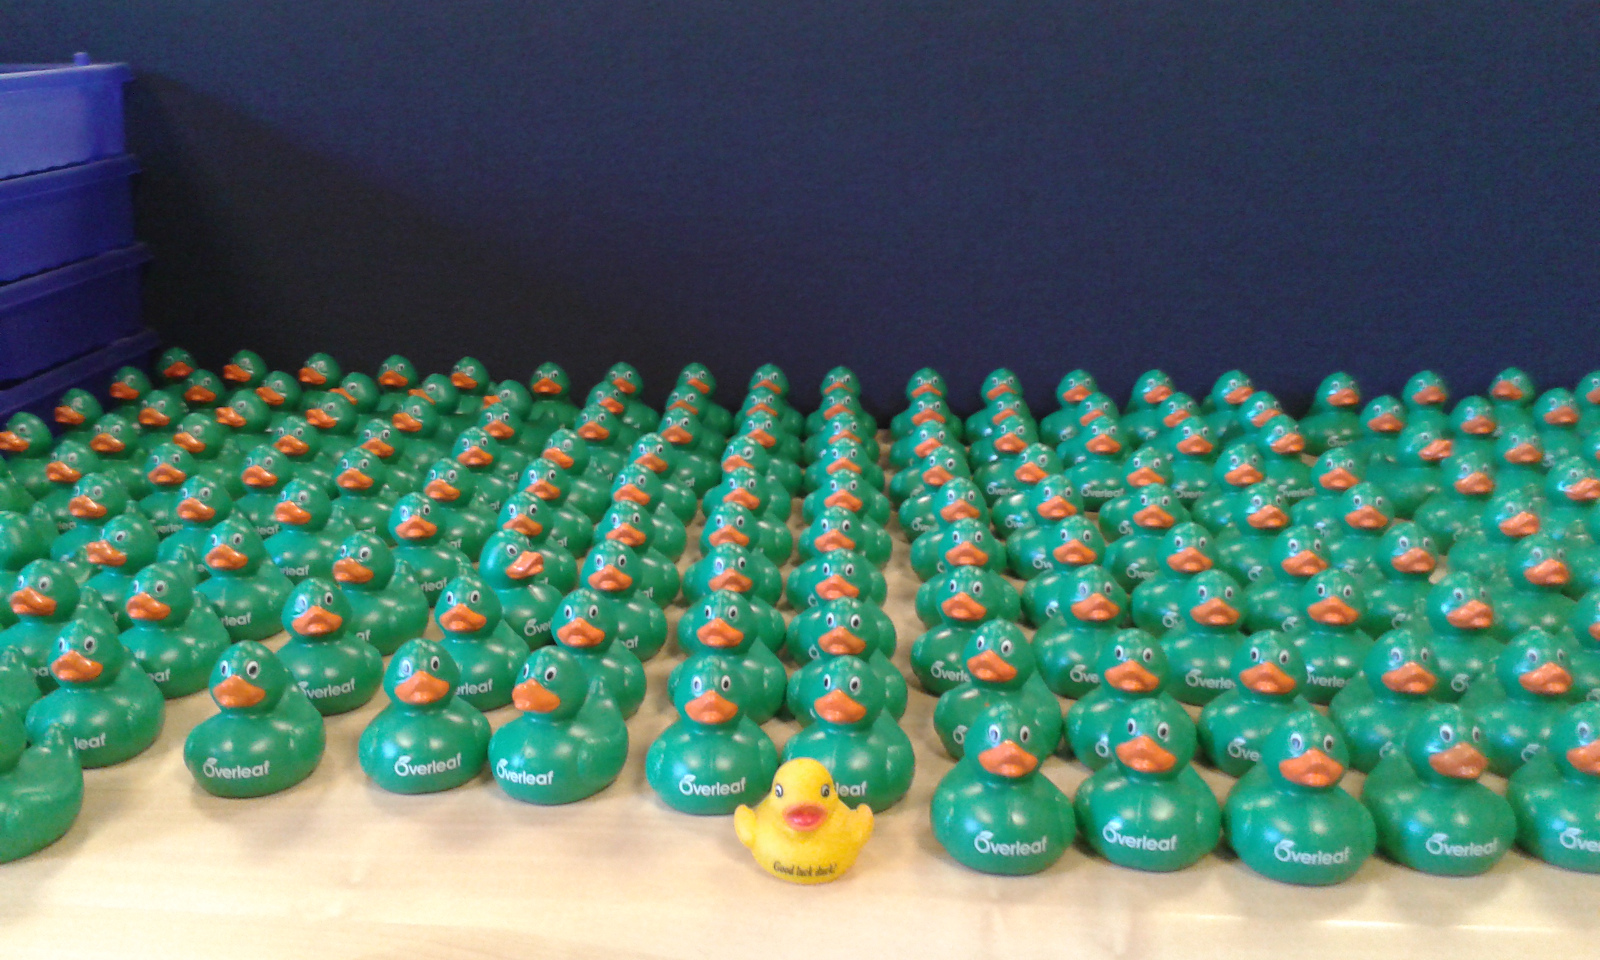 Overleaf Rubber Duck Army at Imperial College London